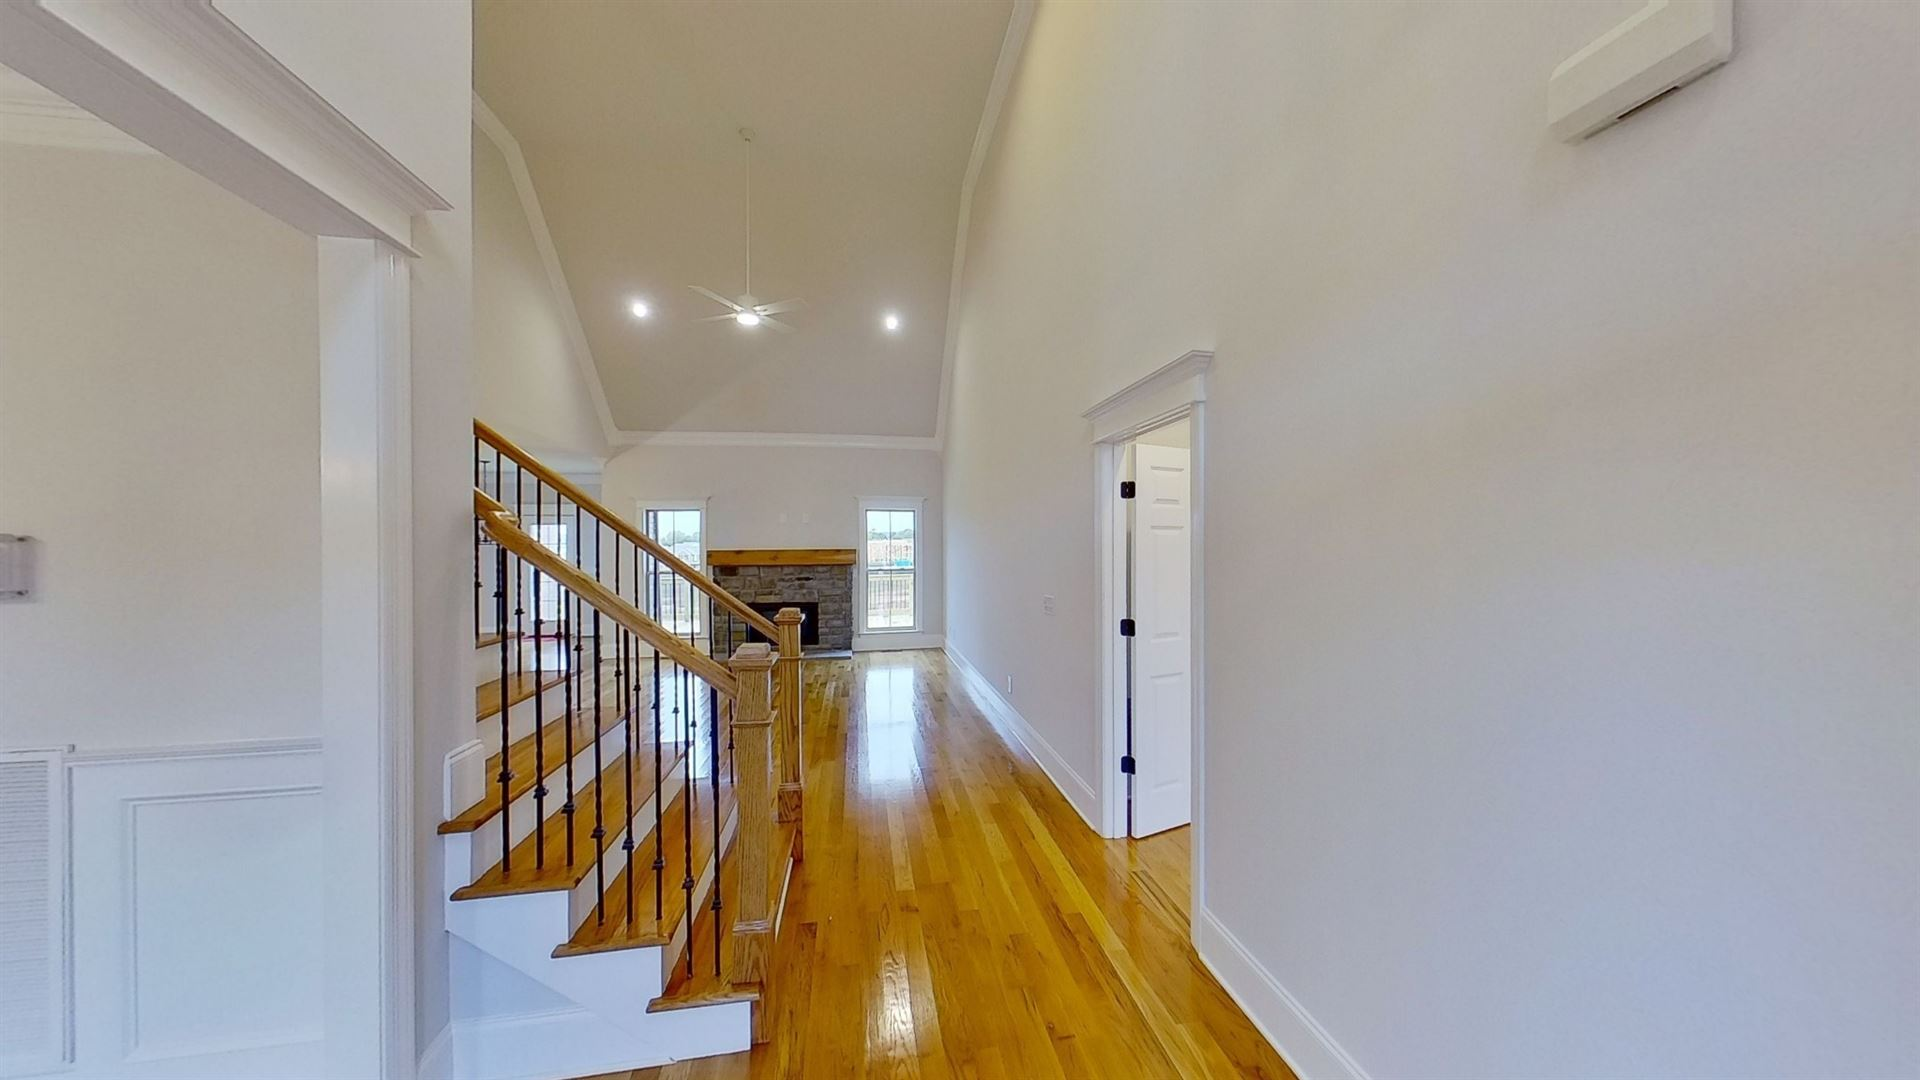 Photo of 8016 Brightwater Way Lot 485, Spring Hill, TN 37174 (MLS # 2242636)